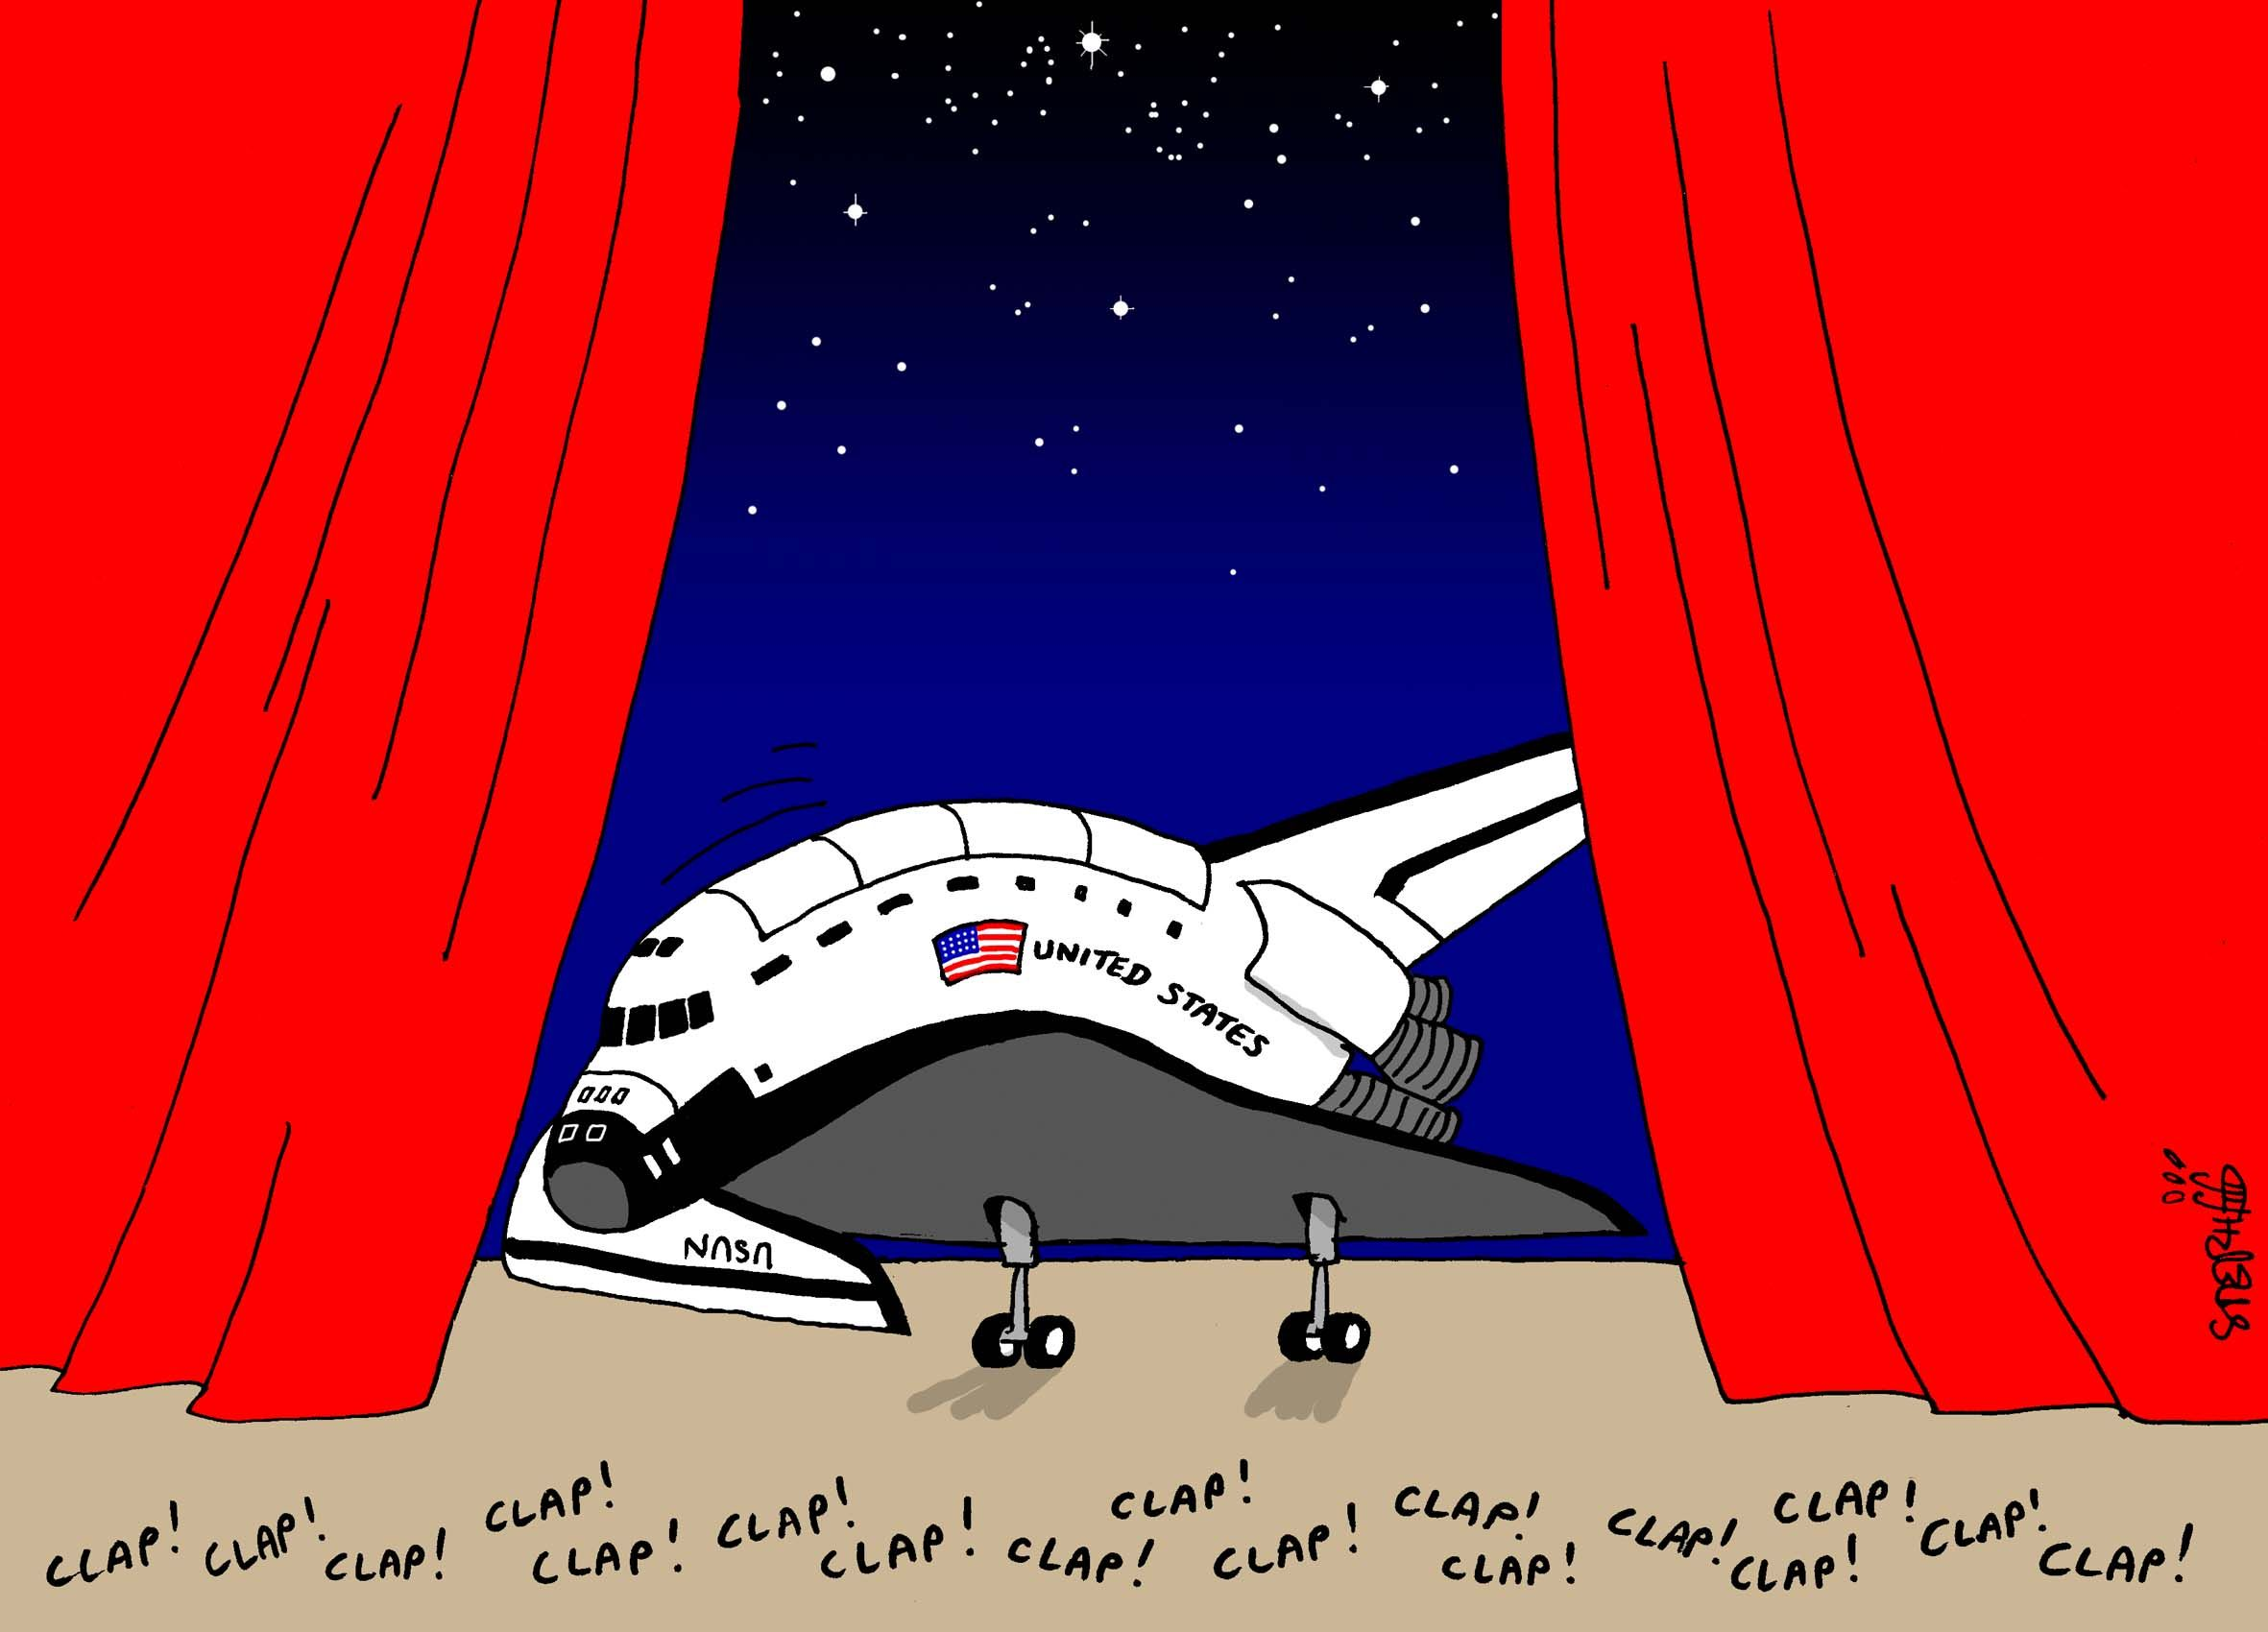 Space shuttle retires copyright by stephff contact stephff